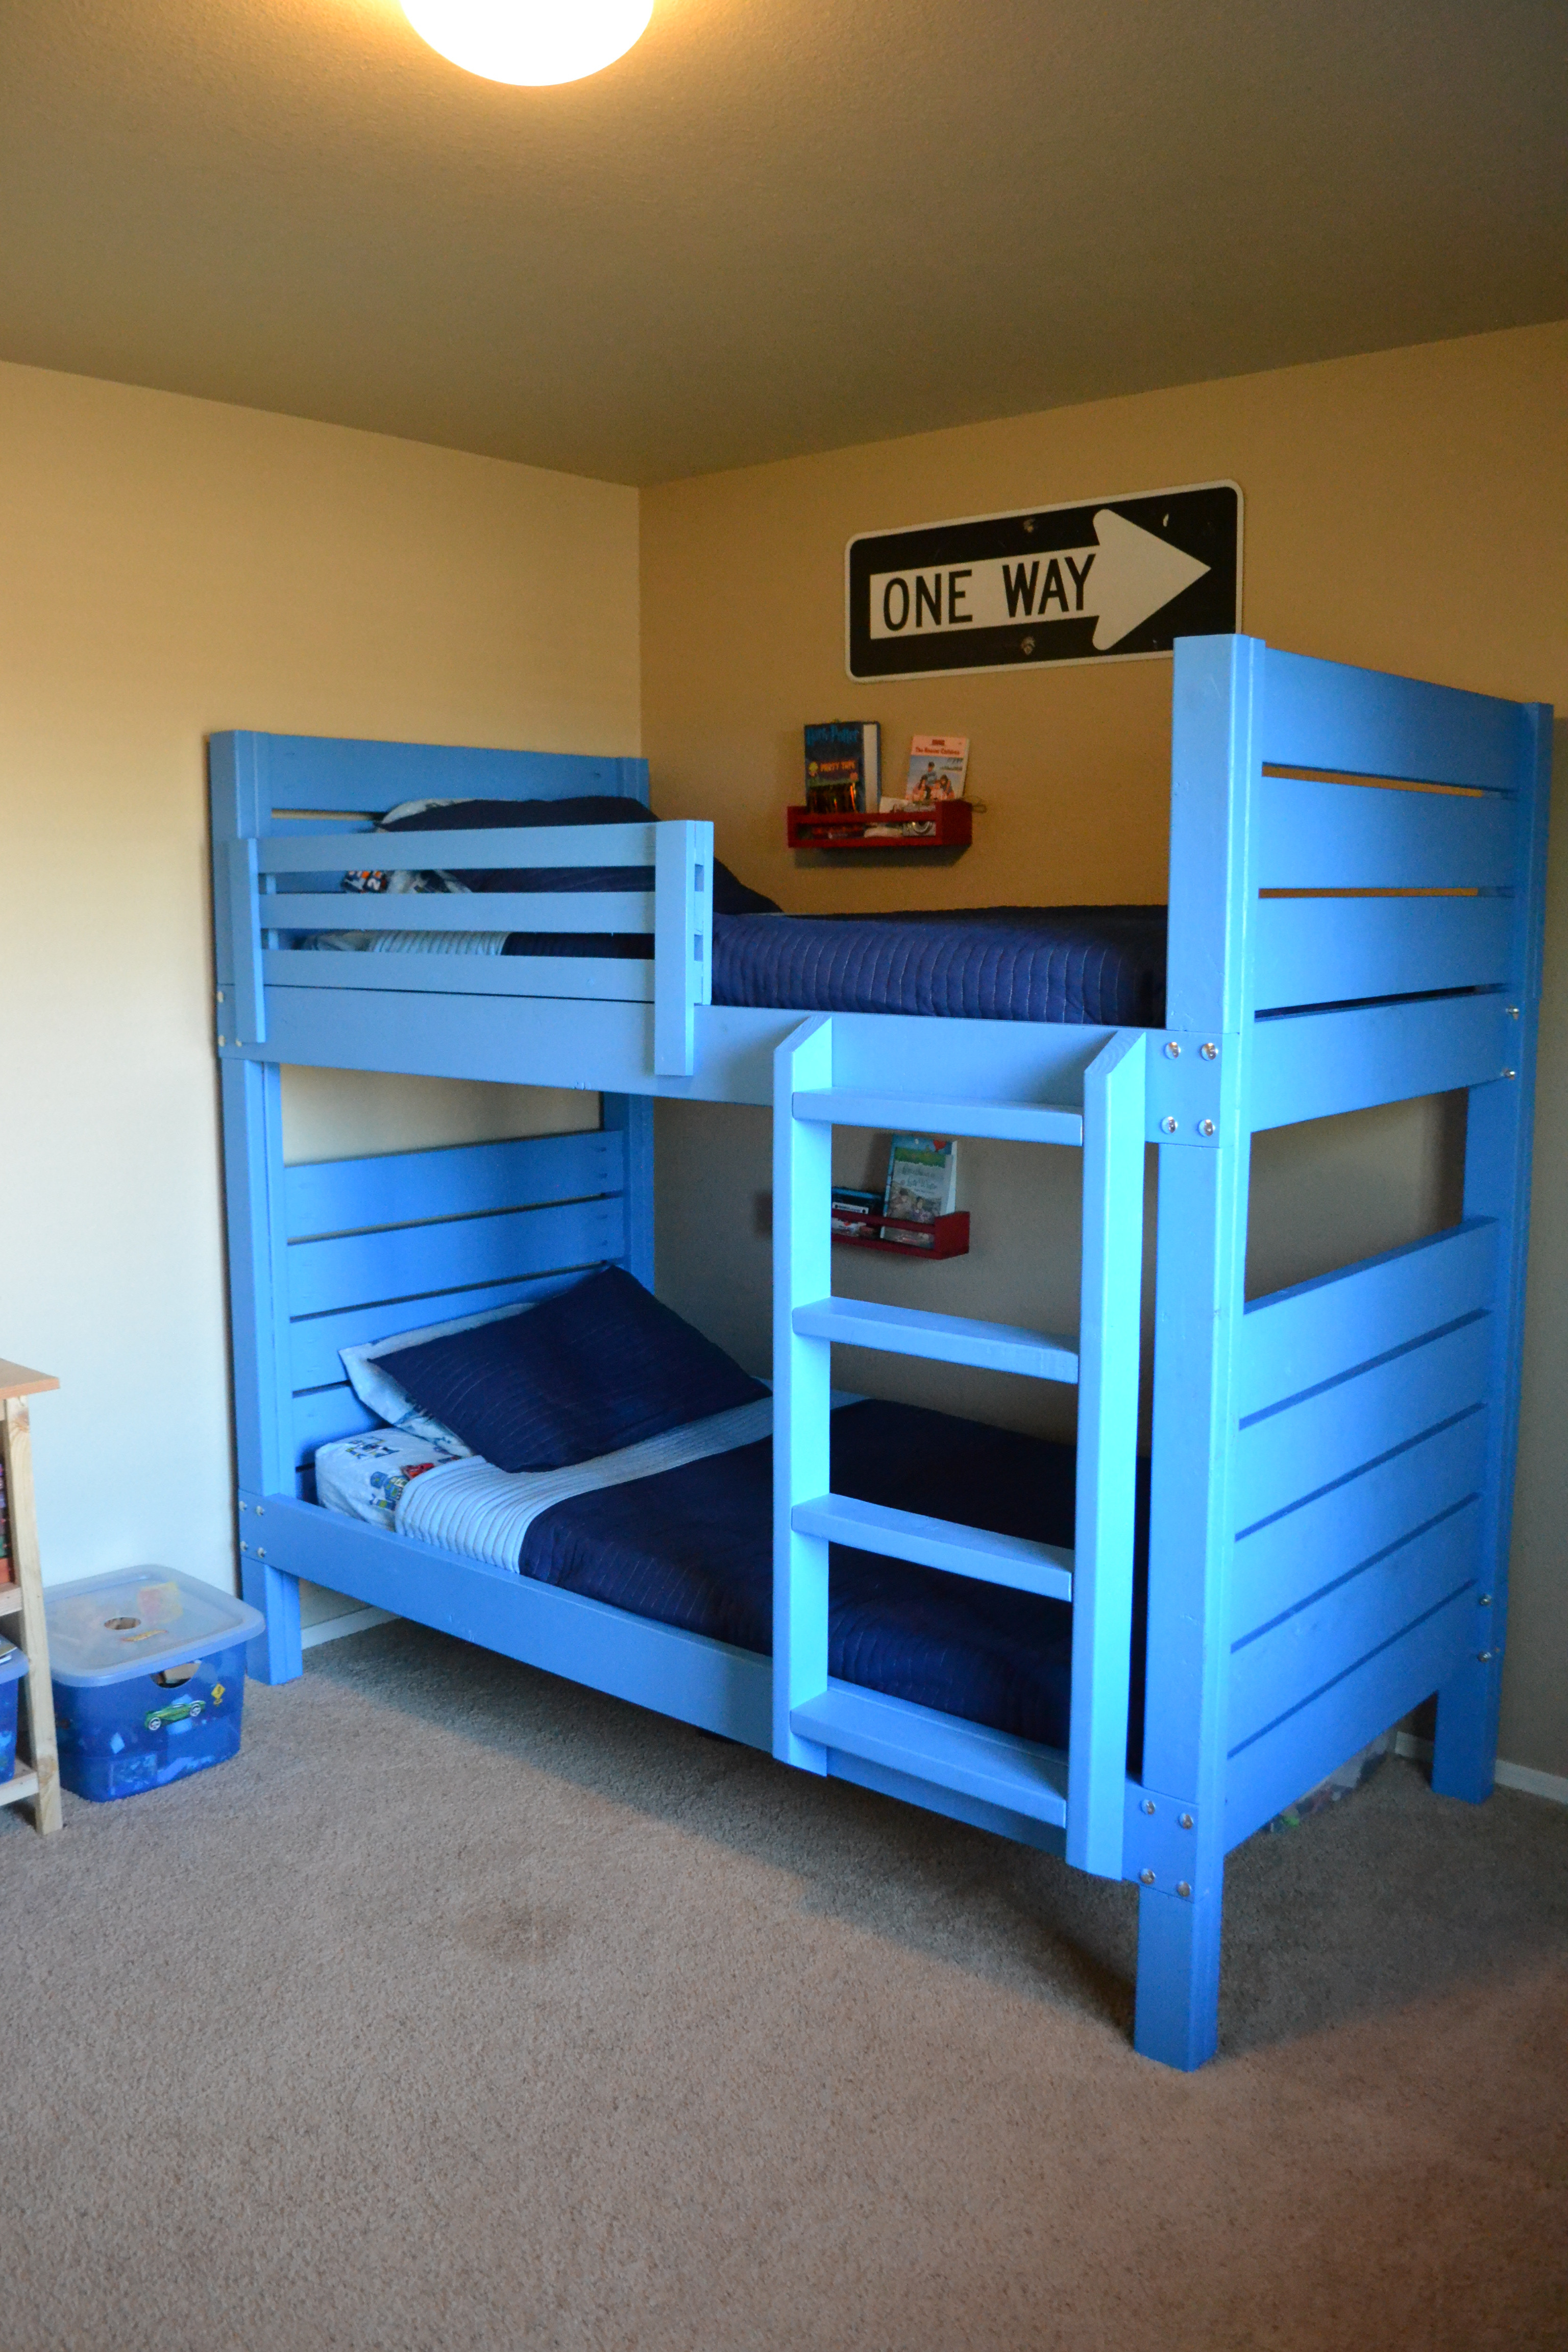 Best ideas about DIY Bunk Bed Ladder . Save or Pin bolts Can I use screws for attaching a ladder to a bunk Now.